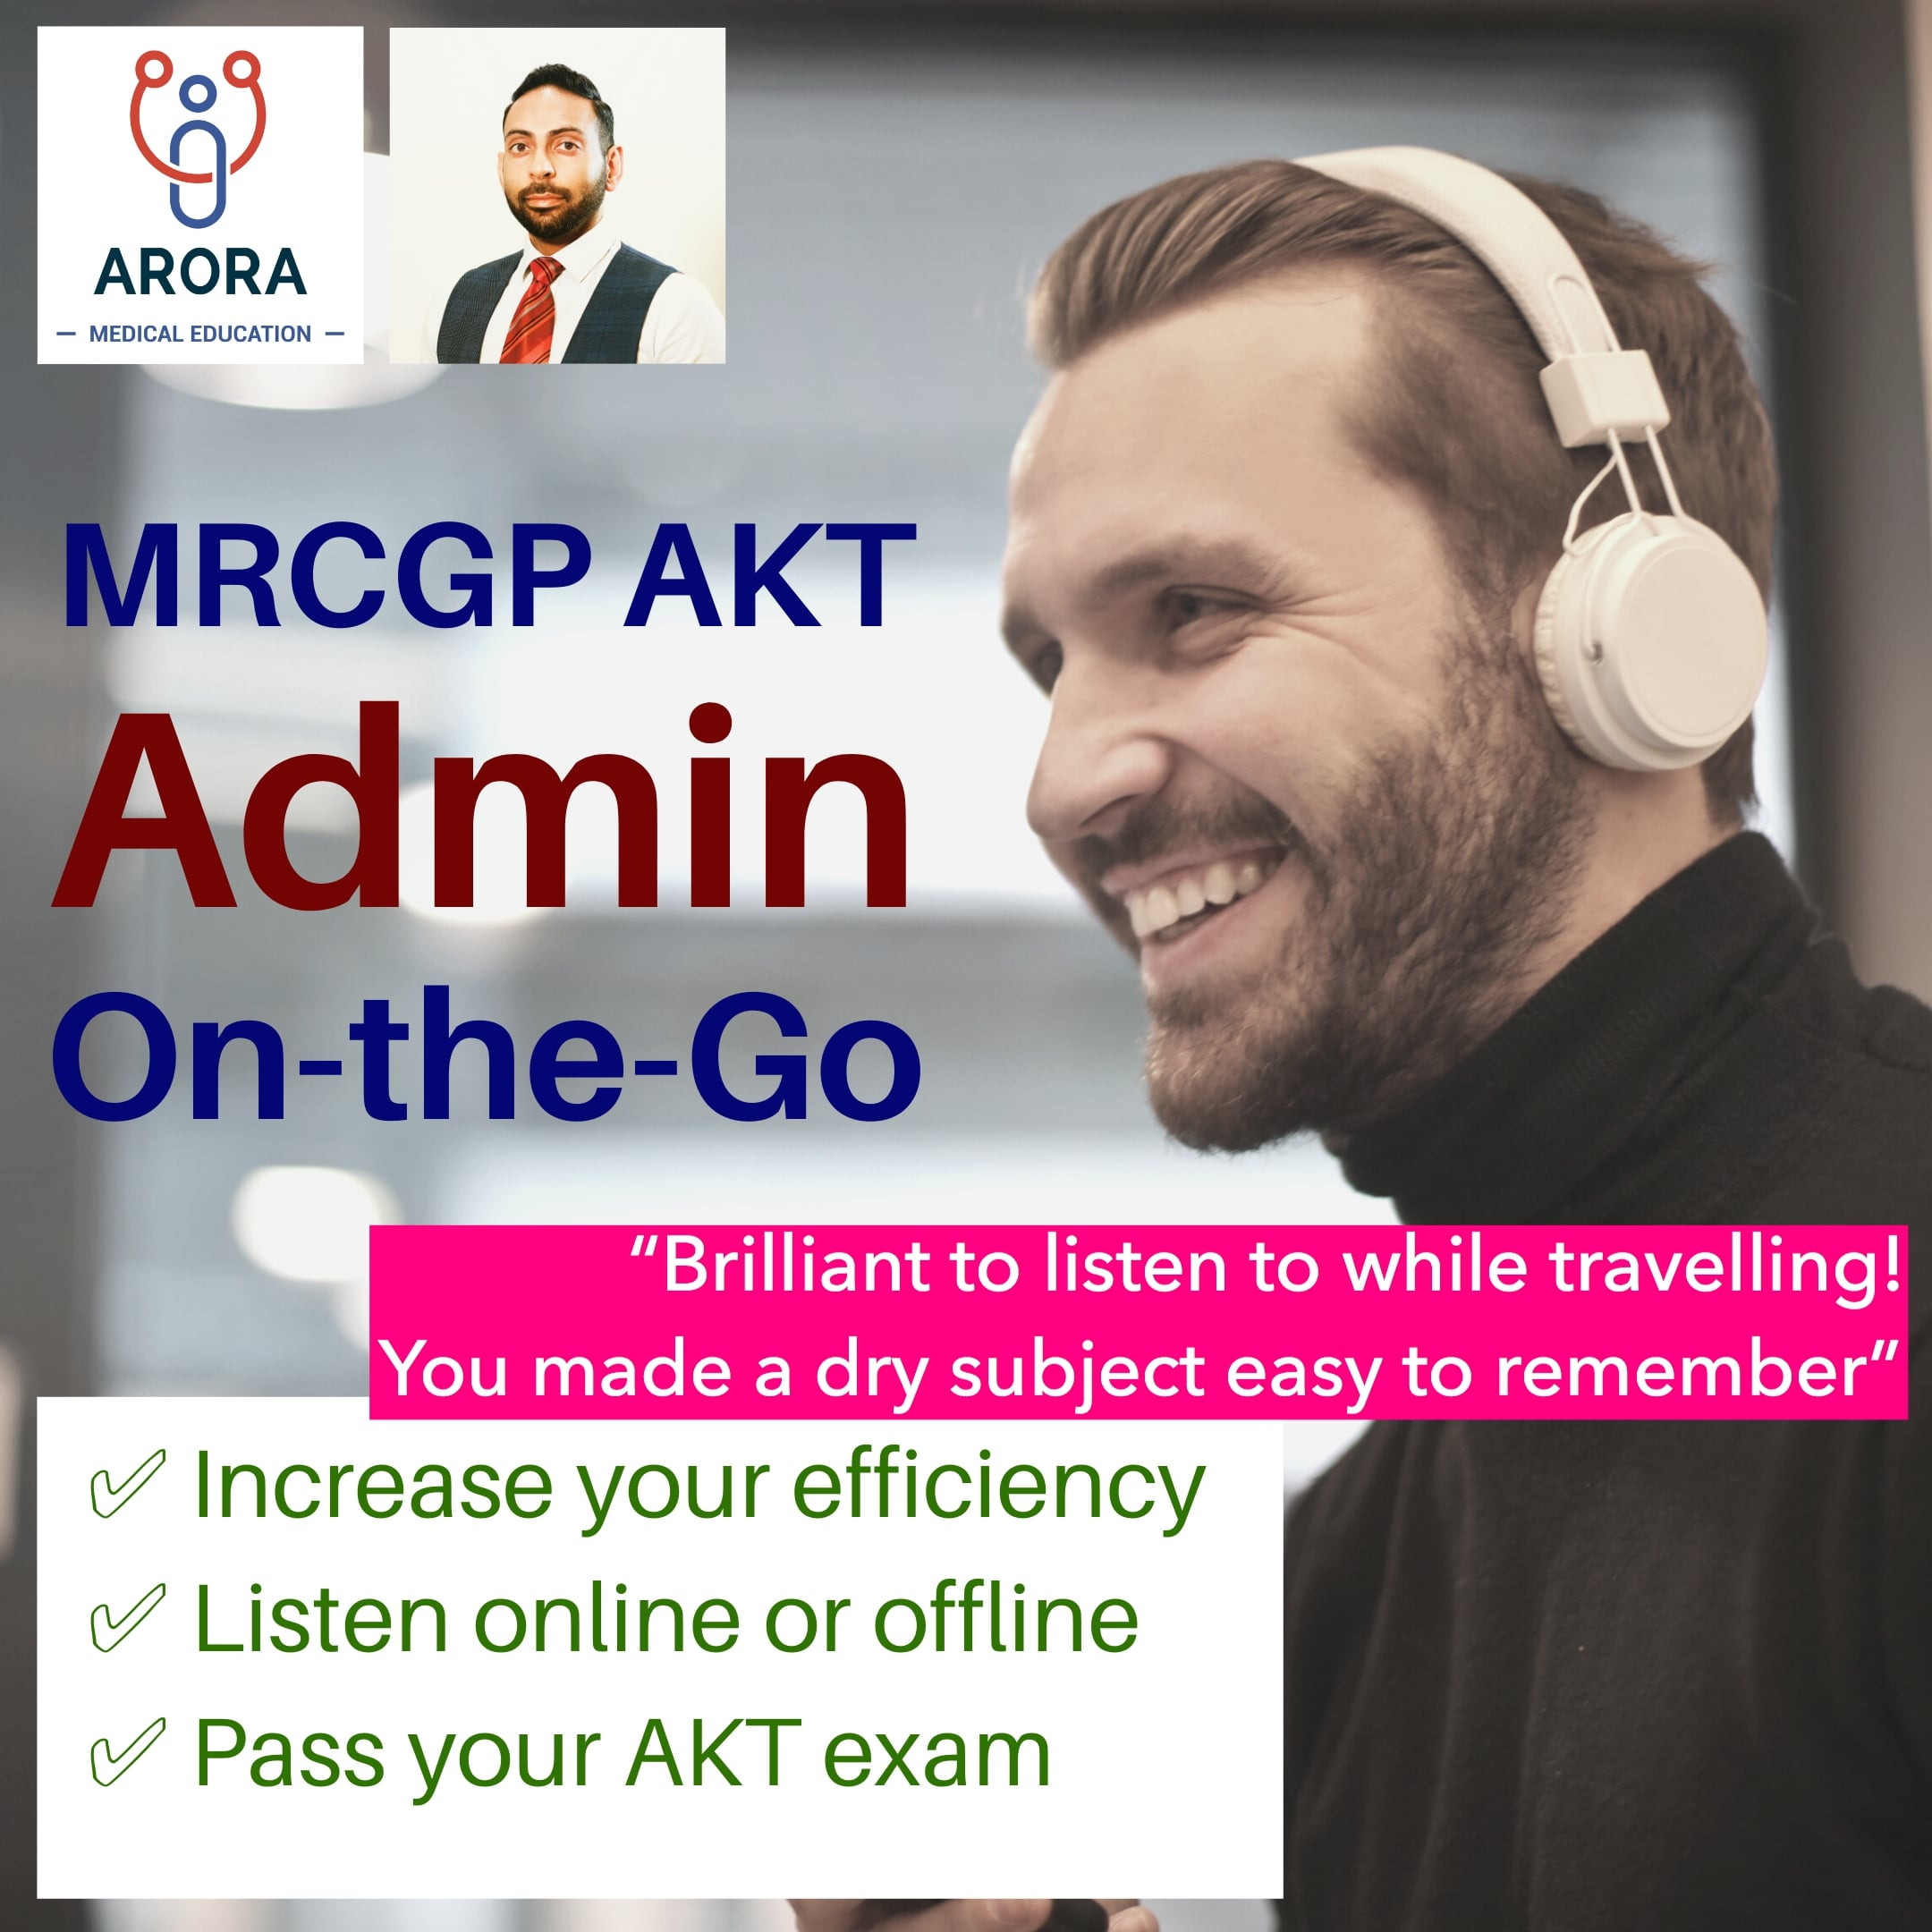 admin on the go - MRCGP CSA, AKT and PLAB Exam Courses and Online Webinars - Arora Medical Education